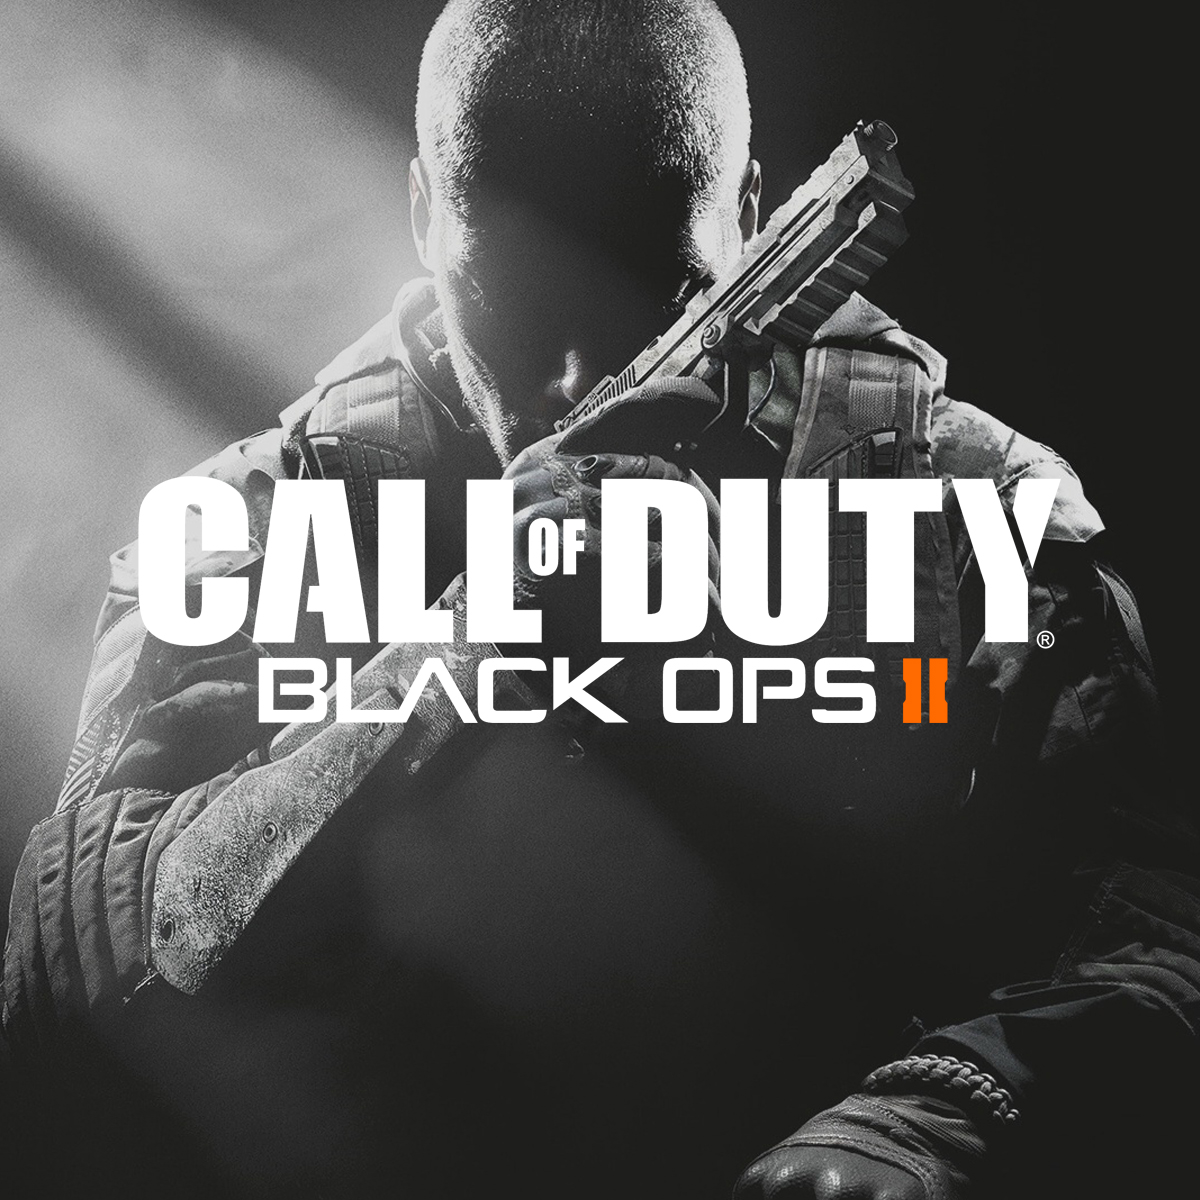 Call Of Duty Black Ops 2 Wallpaper: Black Ops 2 Images